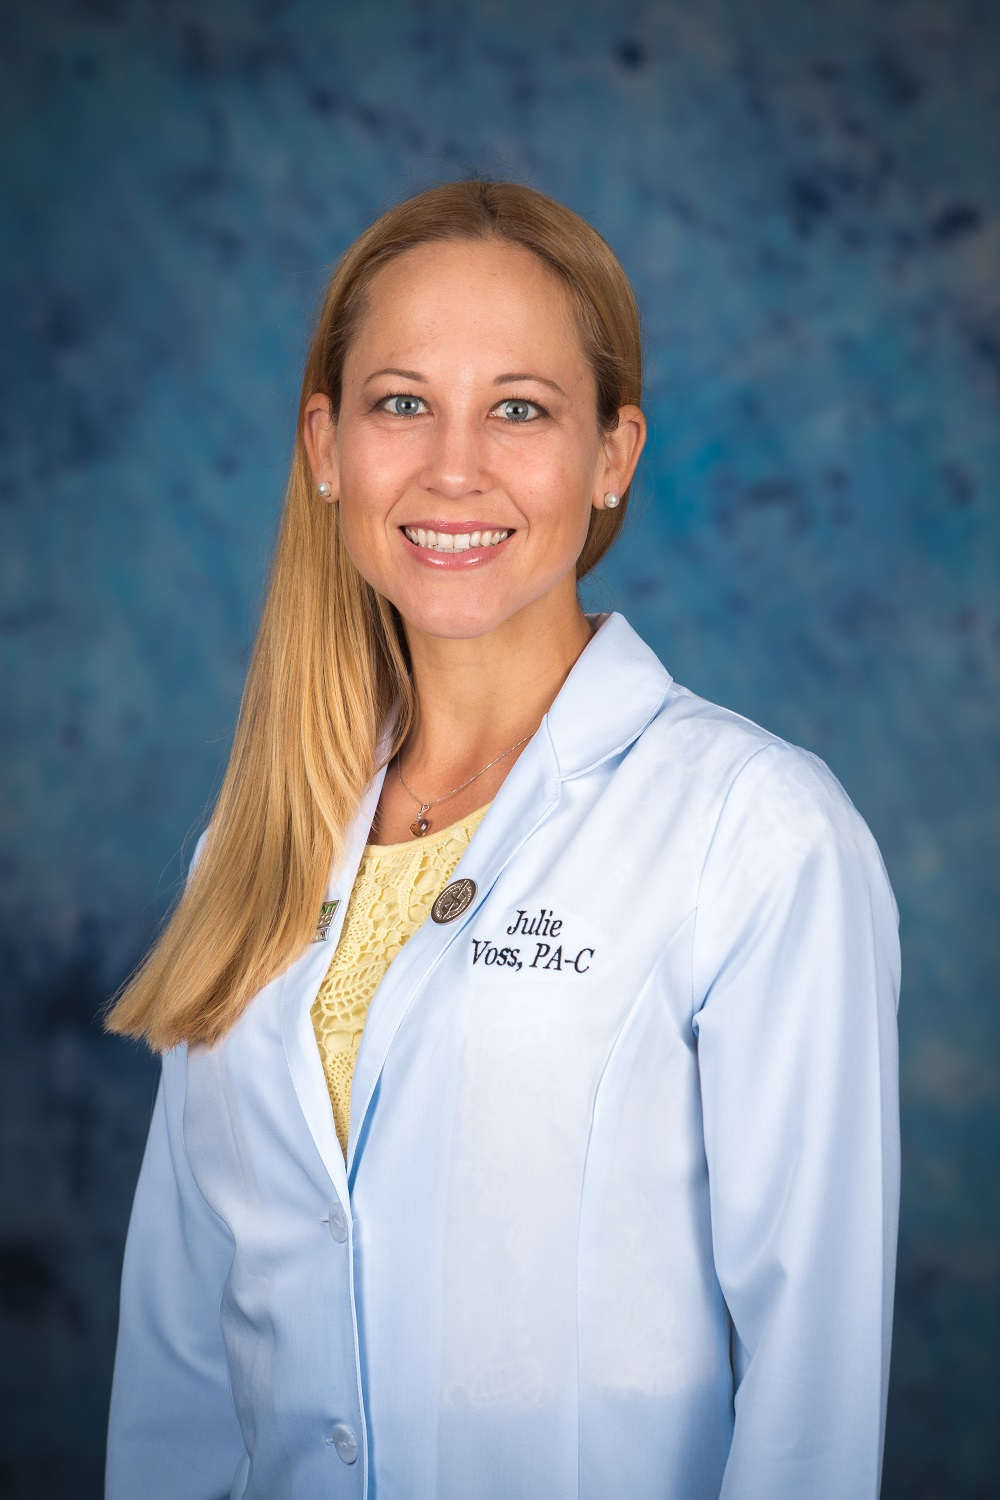 Julie Voss, PA-C of Southern Medical Group